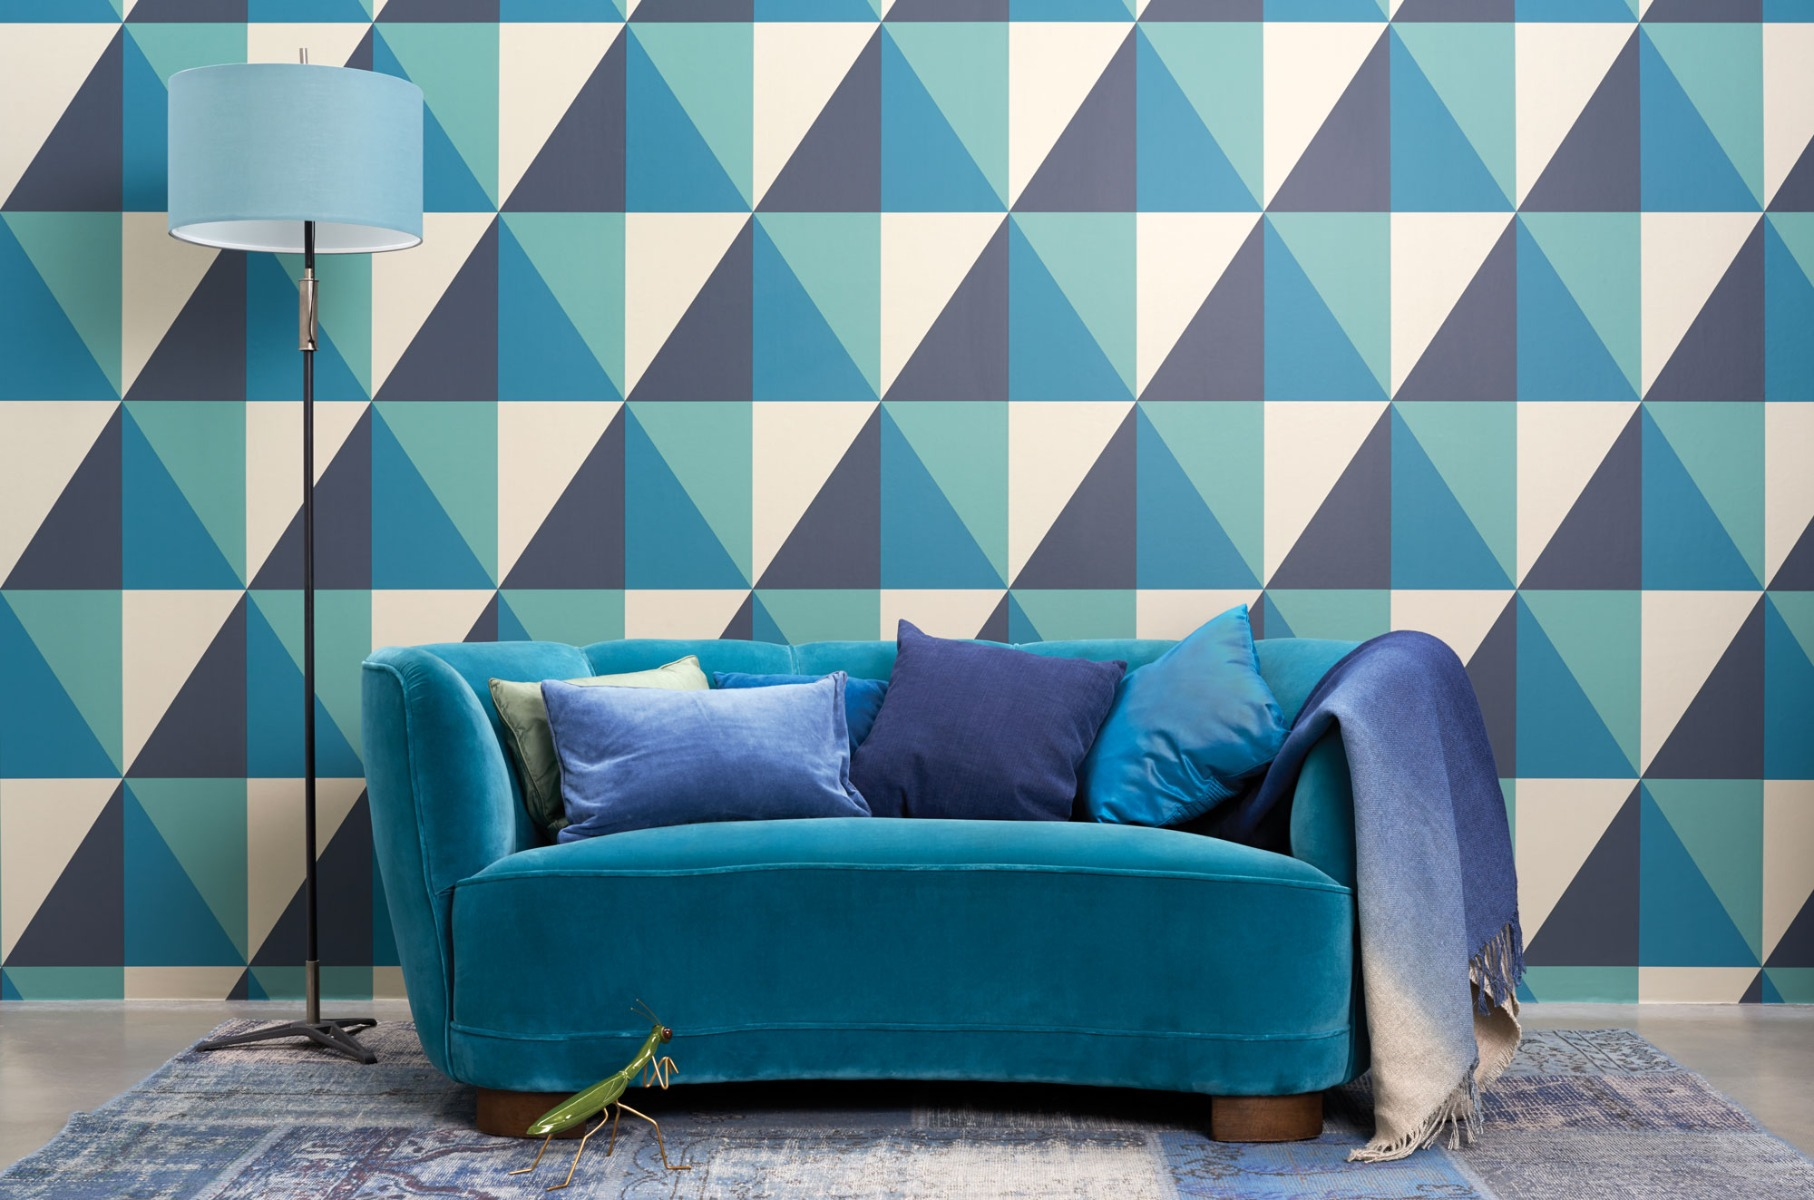 Cole & Son Geometric II Wallpaper, Apex Grand, Teal